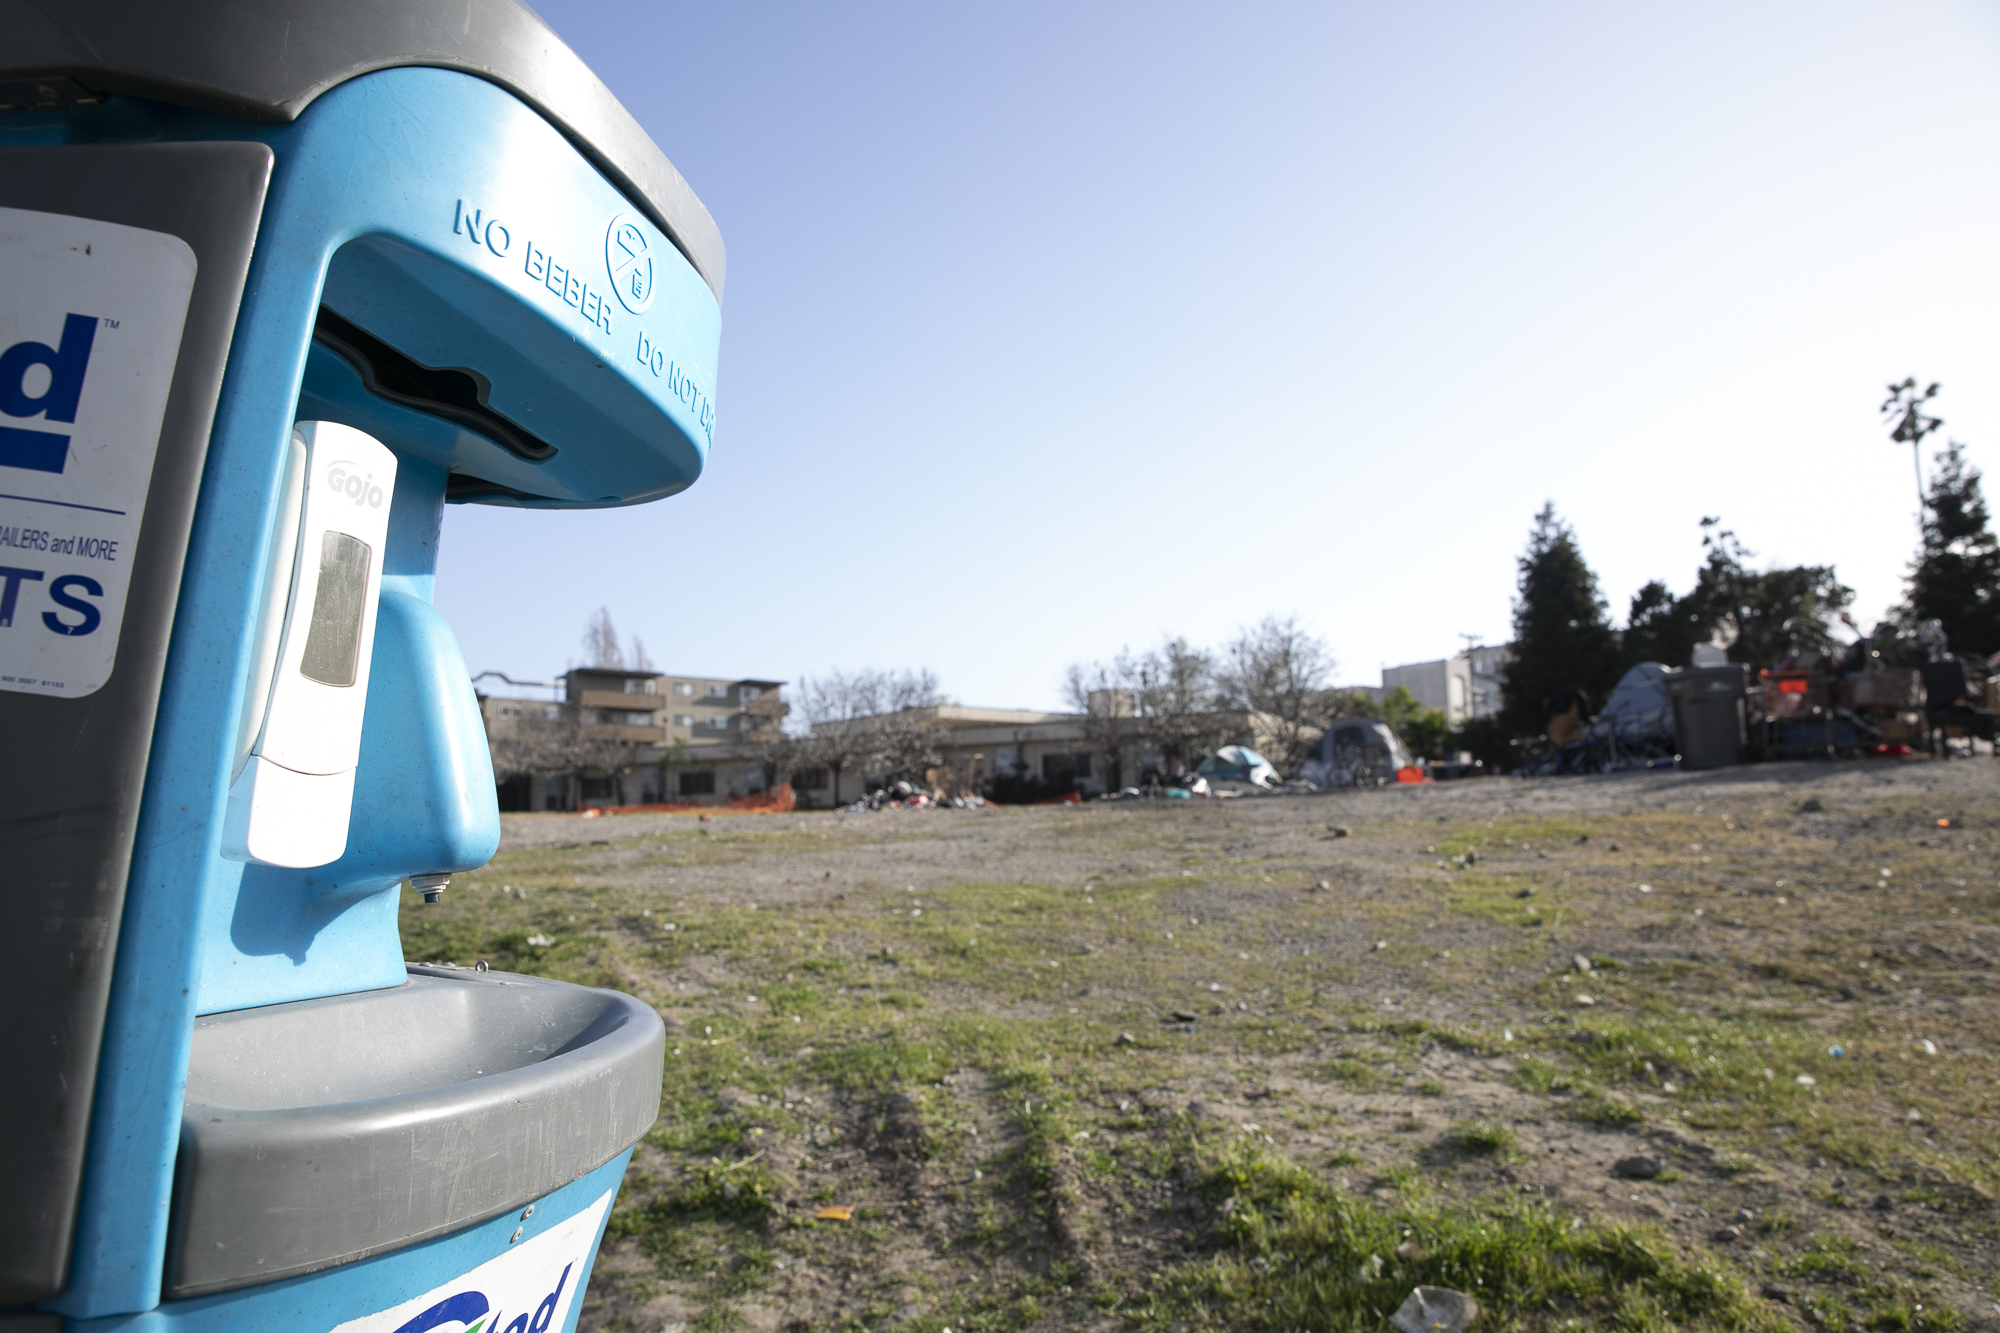 A hand-sanitizing station at a homeless encampment near Oakland city hall. Photo by Anne Wernikoff for CalMatters